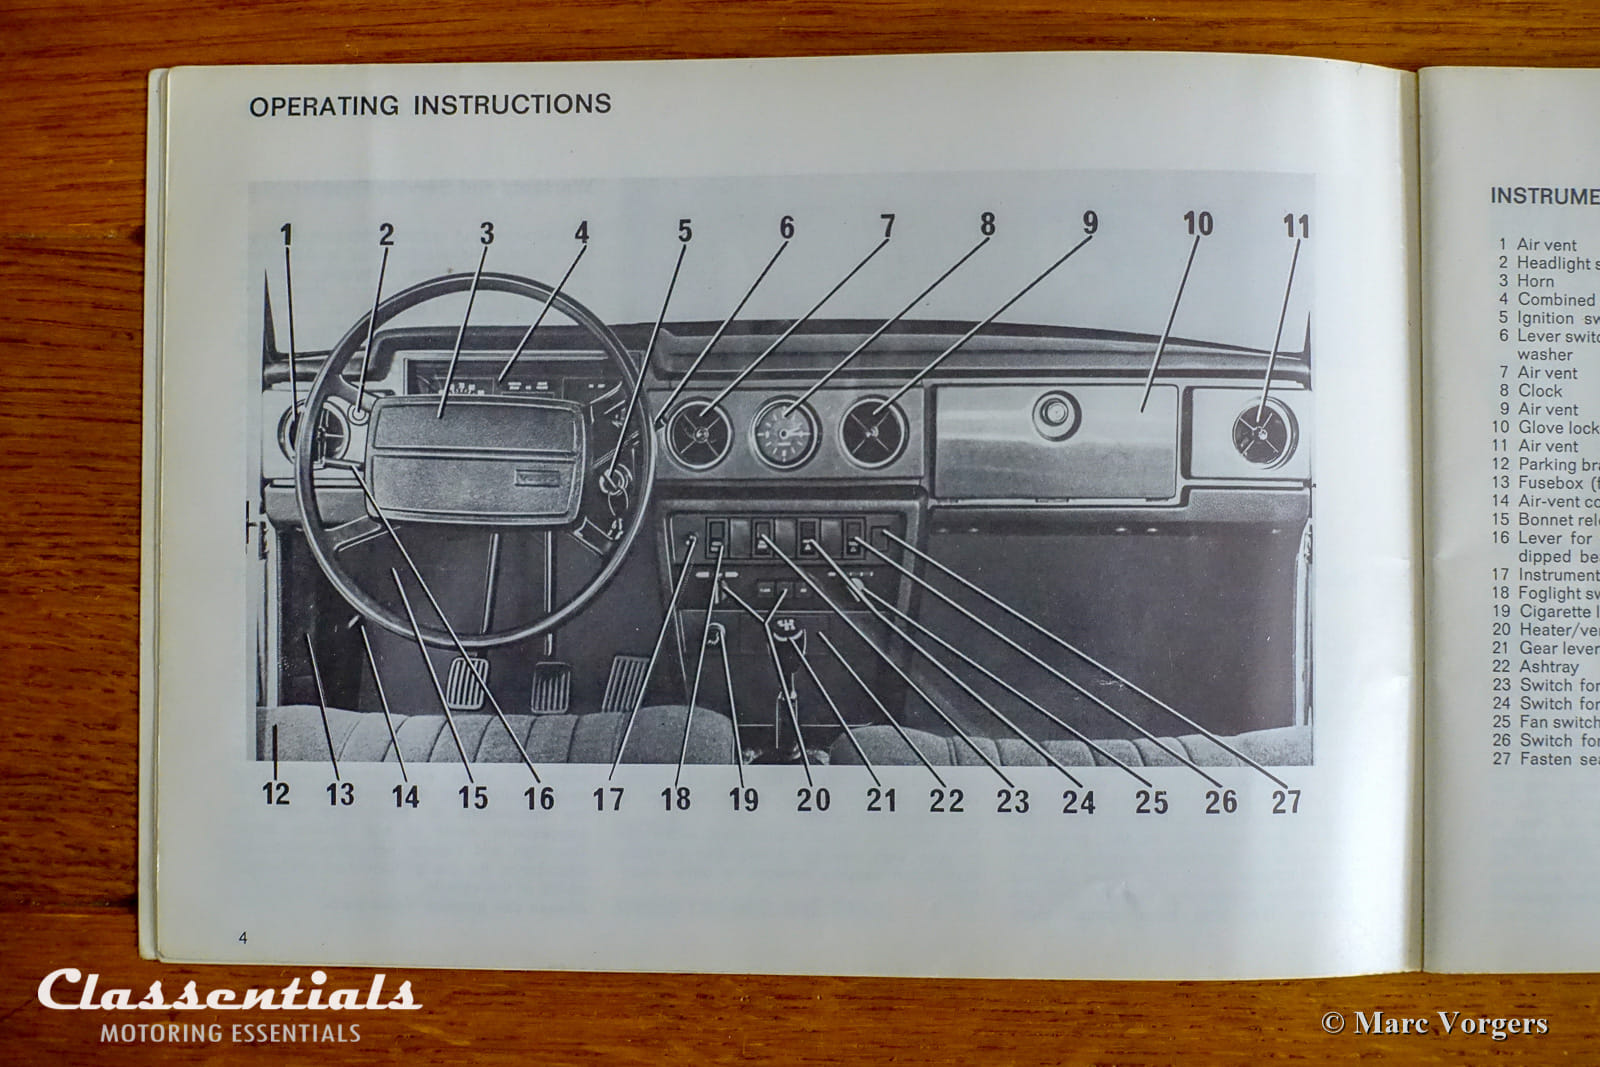 1969 Volvo 164 Wiring Diagram Trusted Diagrams 1973 Opel Gt 1970 Ford Ranchero 1975